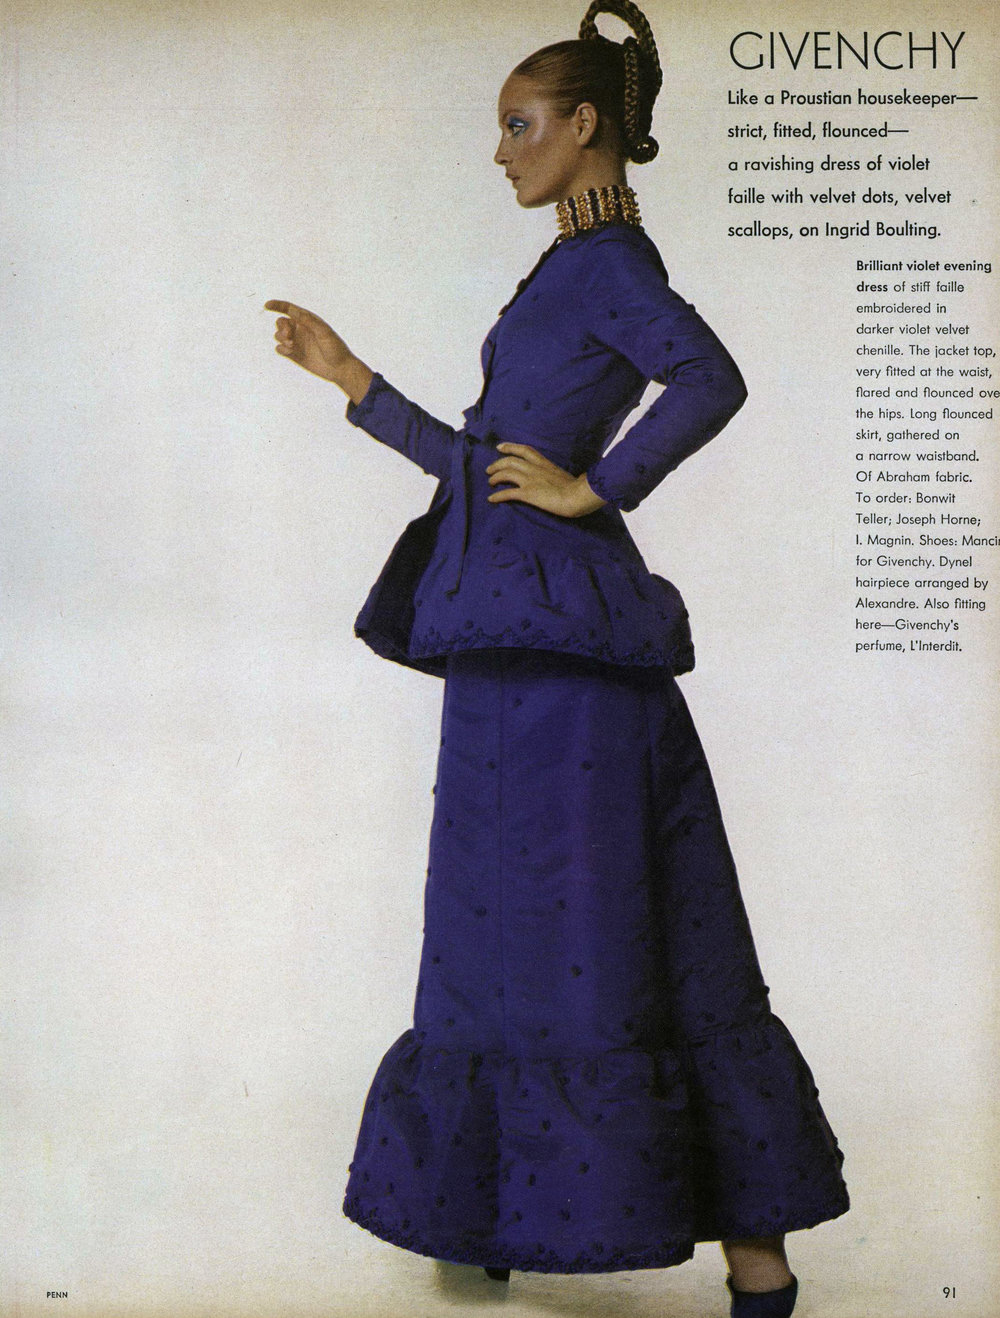 Wearing Givenchy couture for Irving Penn. Vogue, September 15, 1970.